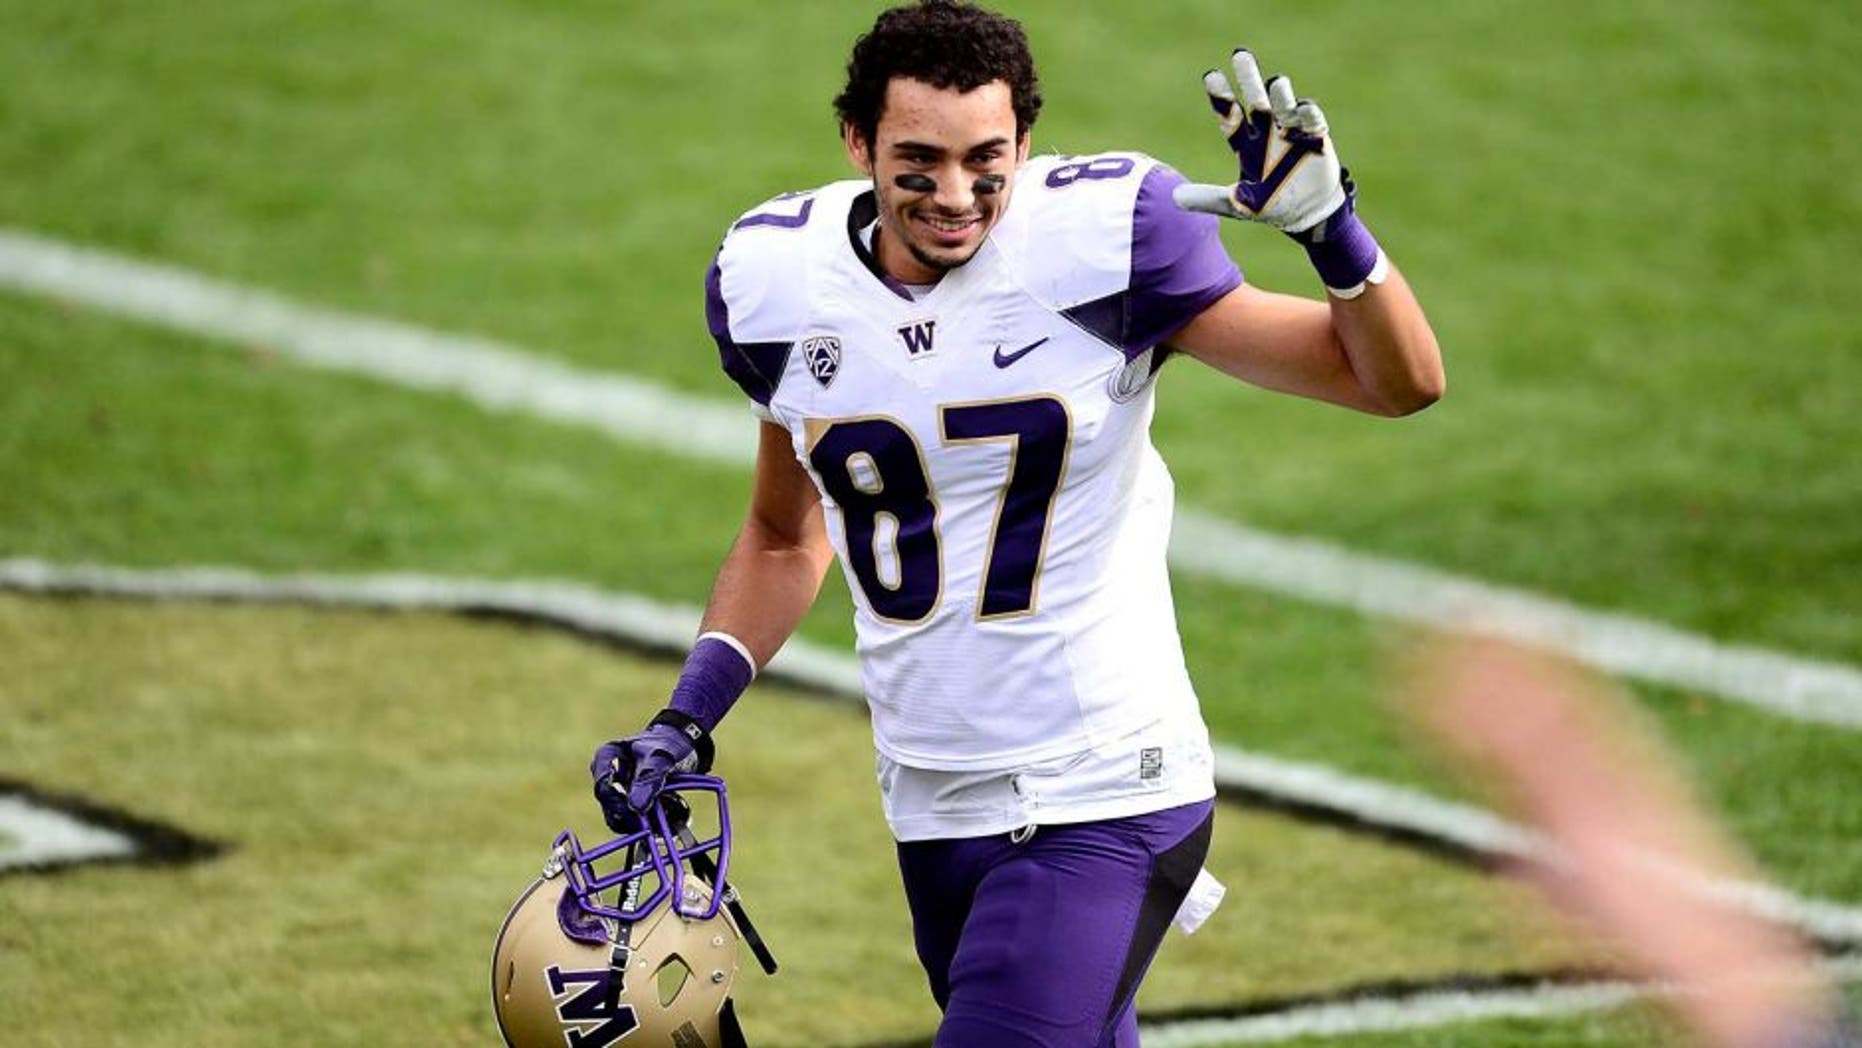 Nov 1, 2014; Boulder, CO, USA; Washington Huskies wide receiver Dante Pettis (87) reacts following the win over the Colorado Buffaloes at Folsom Field. The Huskies defeated the Buffaloes 38-23. Mandatory Credit: Ron Chenoy-USA TODAY Sports